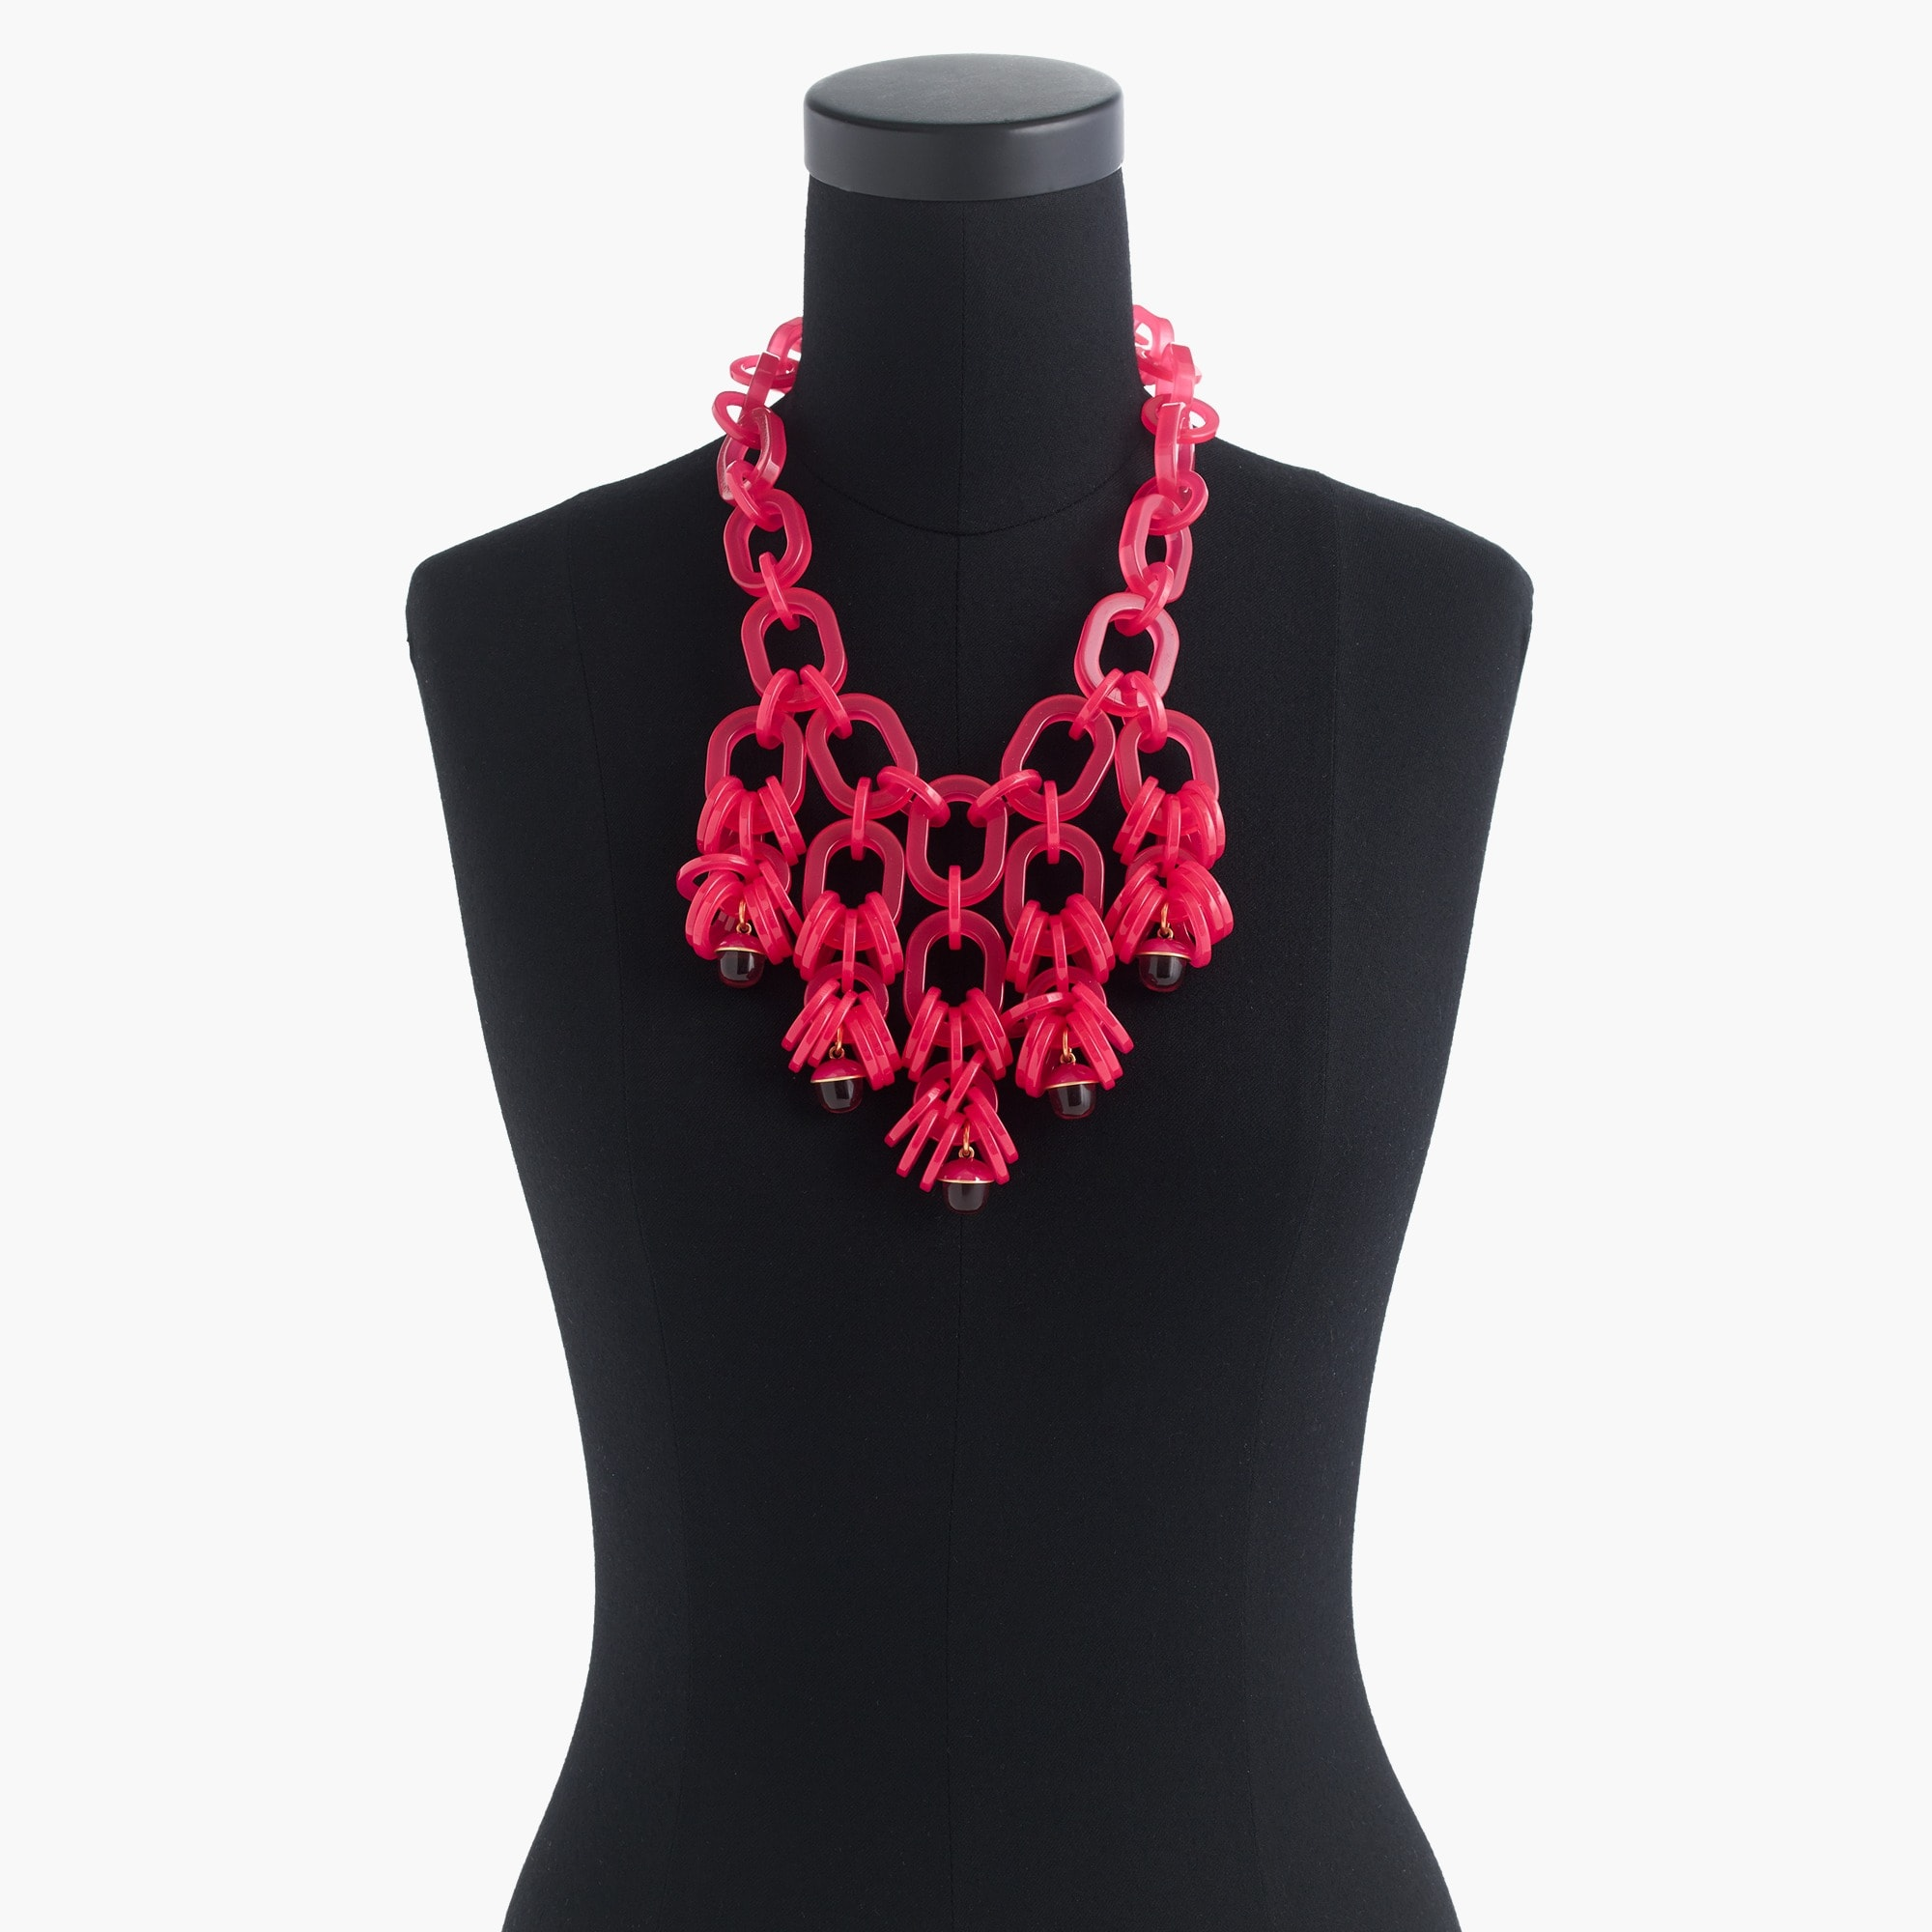 Translucent link statement necklace